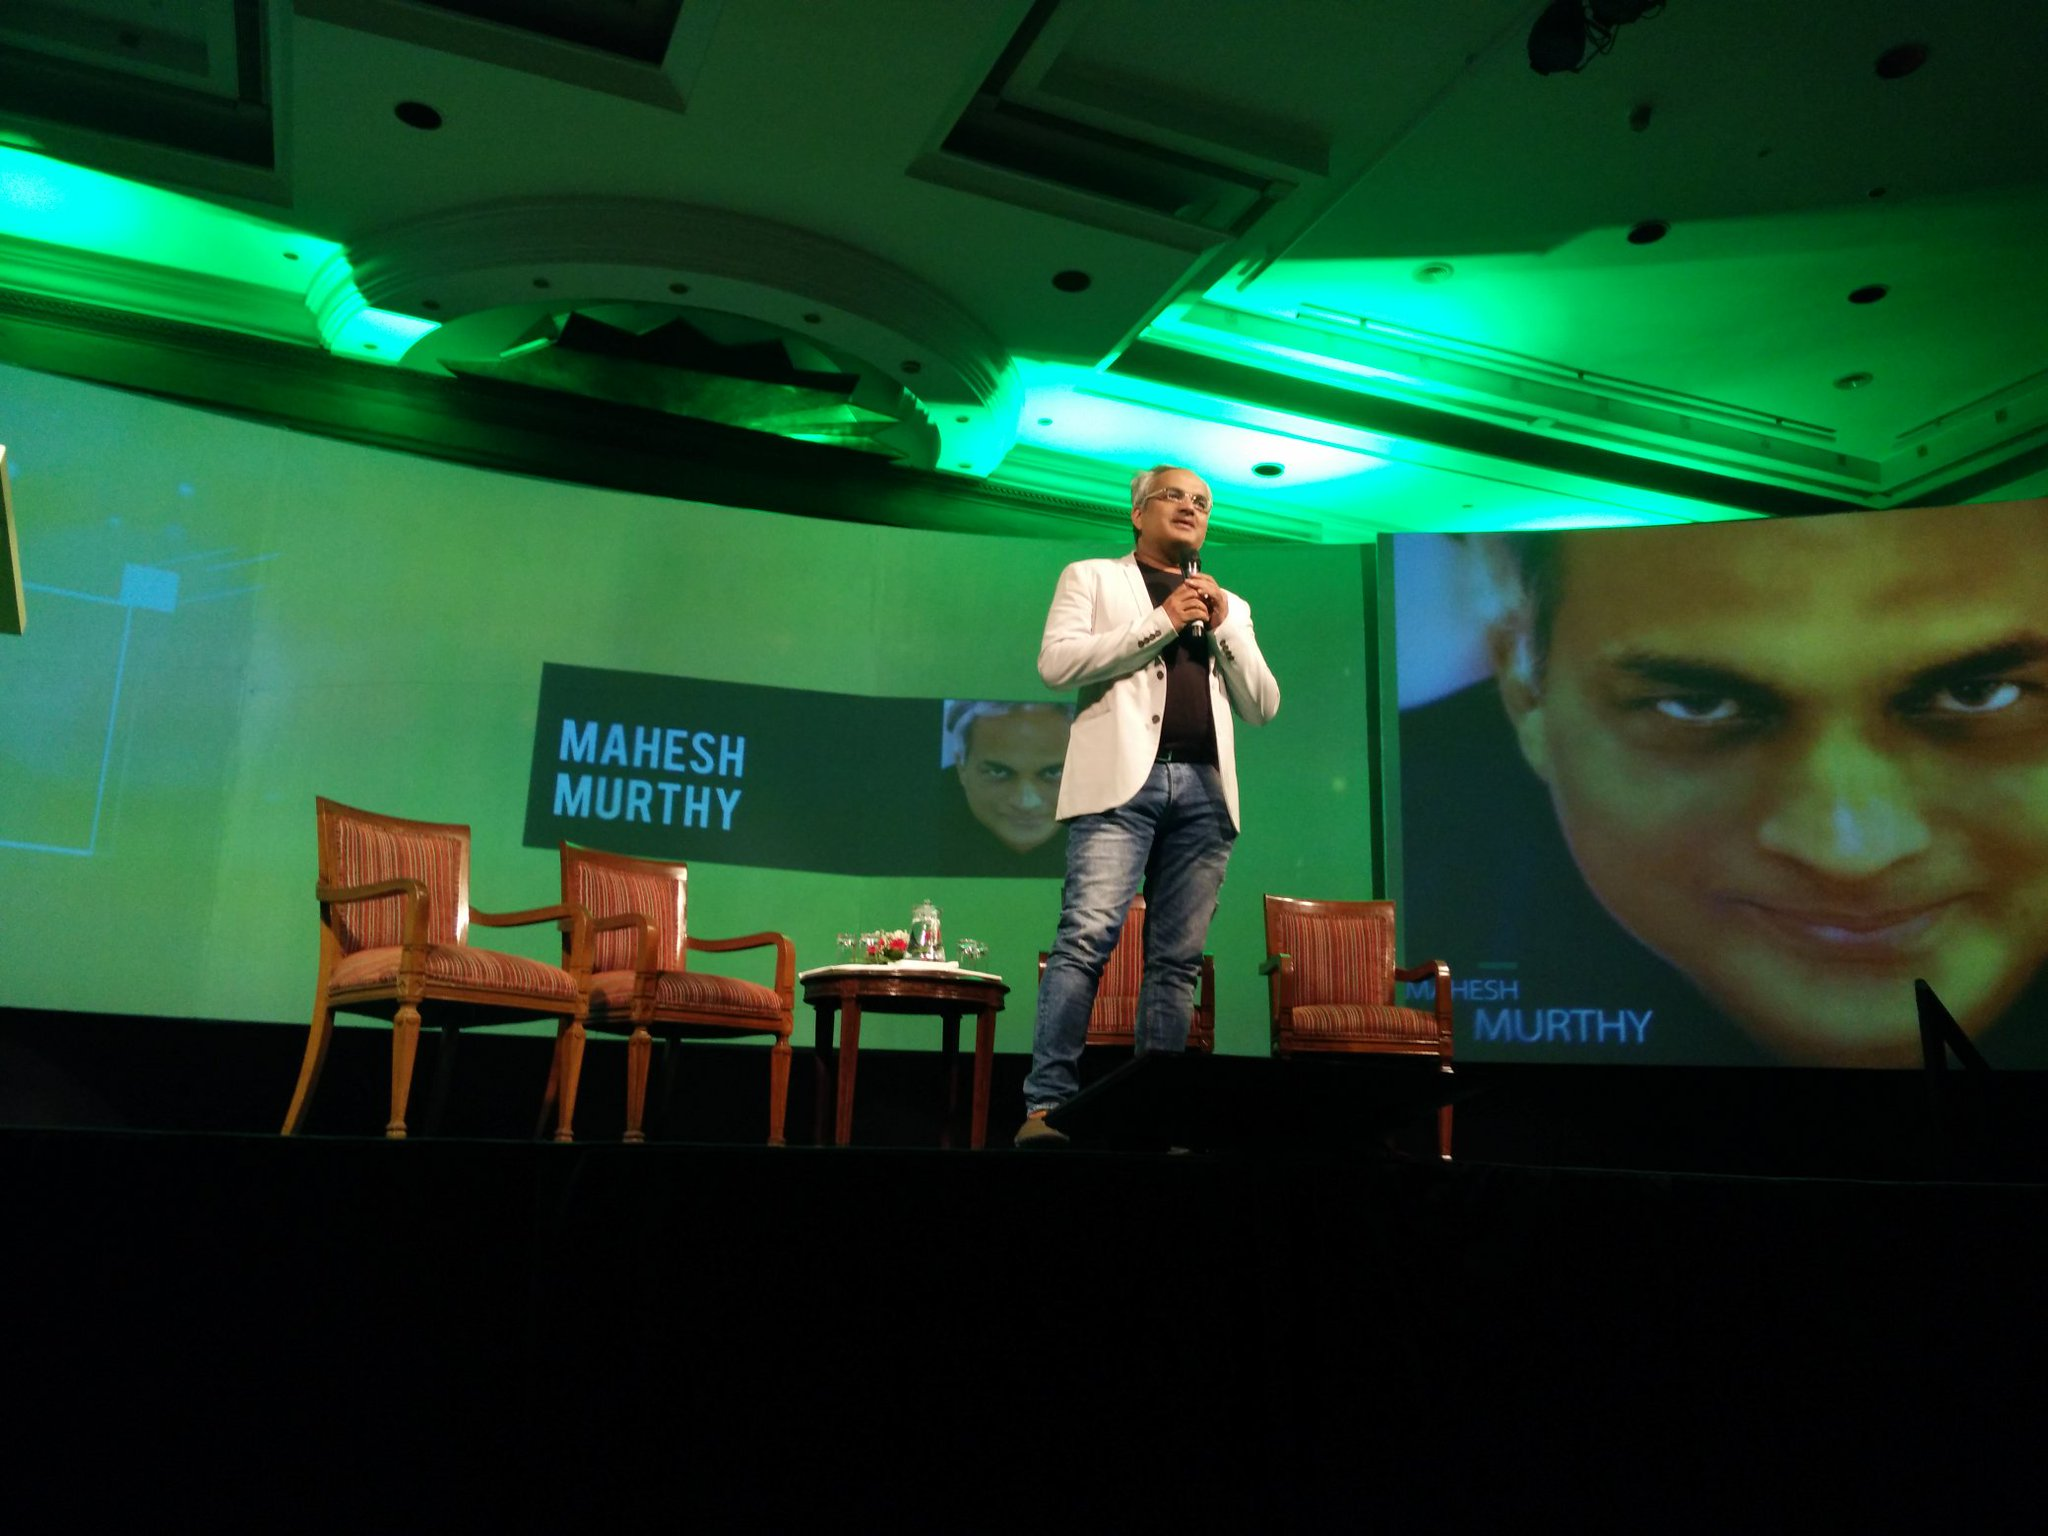 .@maheshmurthy sharing the stage now! #NextGrowthConclave https://t.co/P3MhRvU3Qu